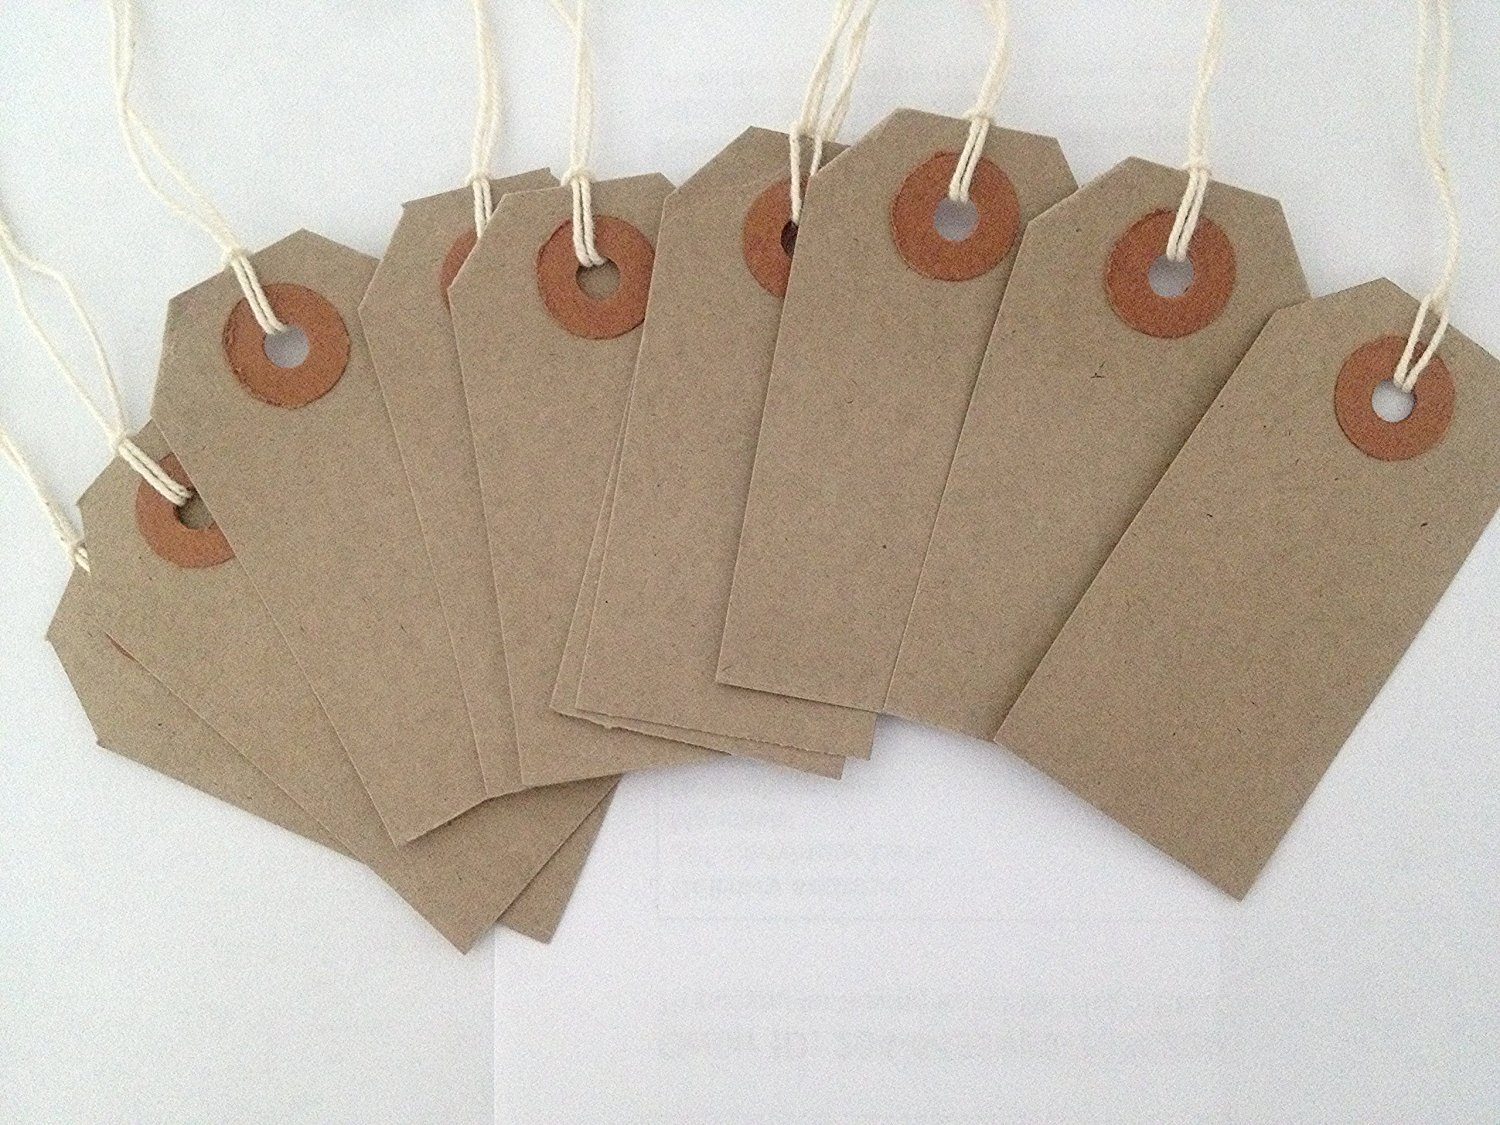 50 Small Brown/Buff (Manilla) Strung 70x35mm Tag/Tie On Luggage ...